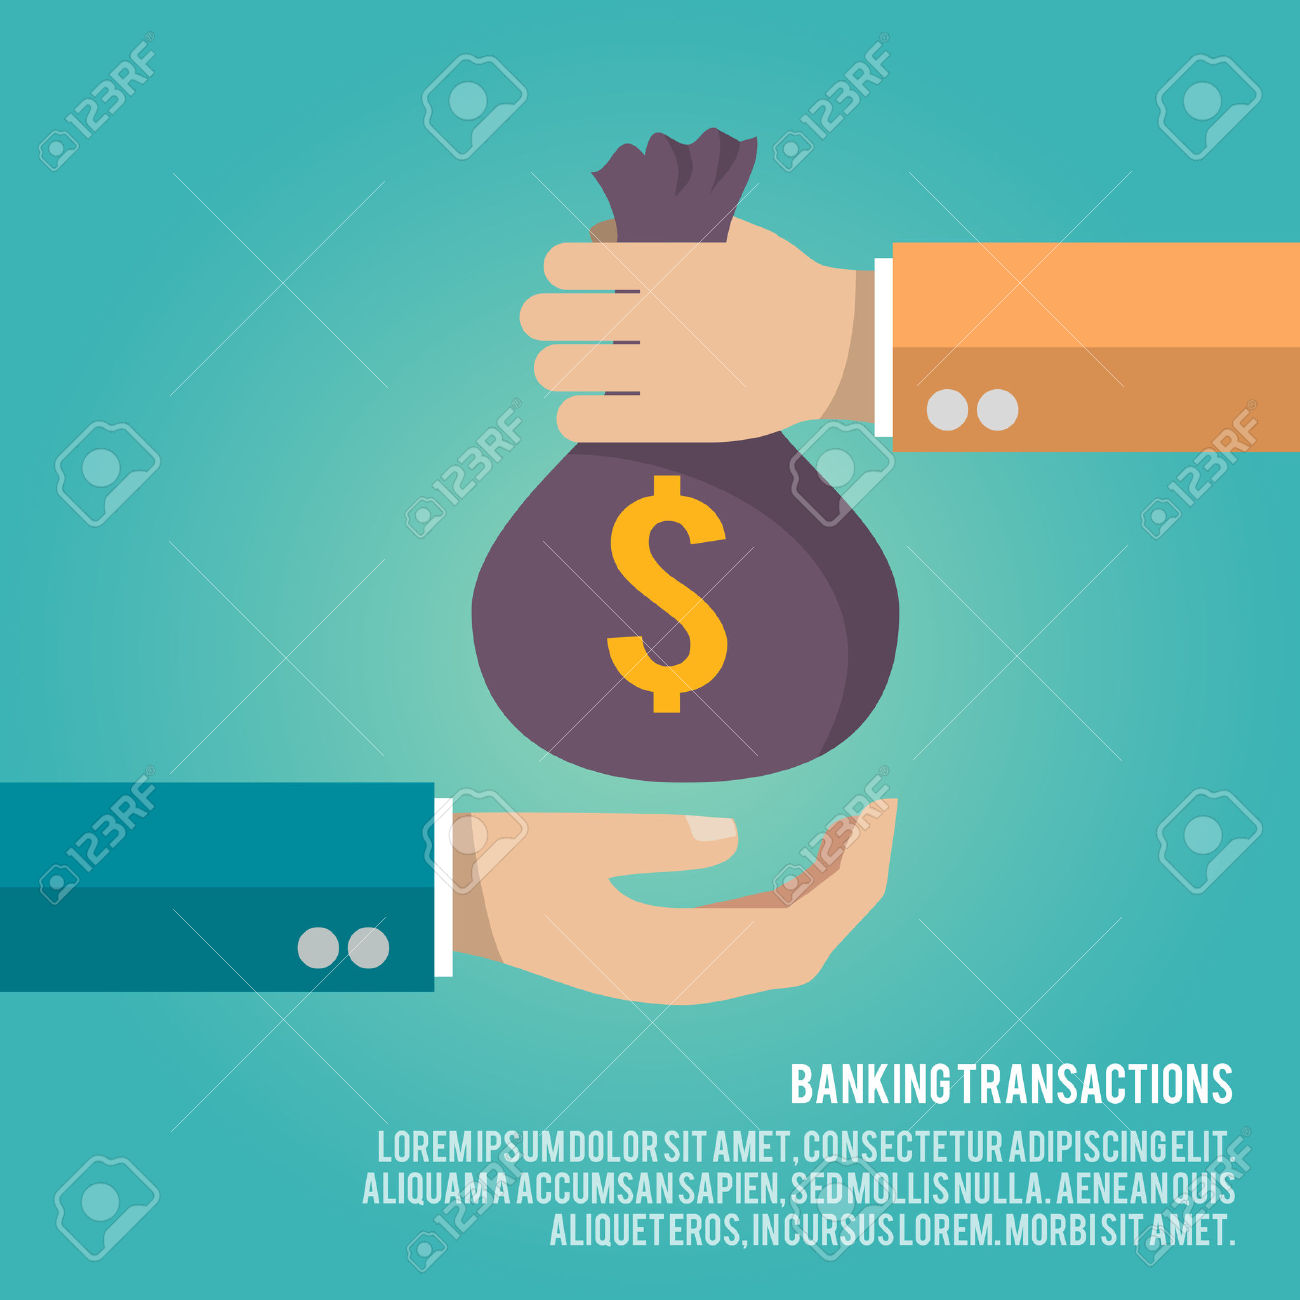 Of banker giving bags. Bag clipart animated